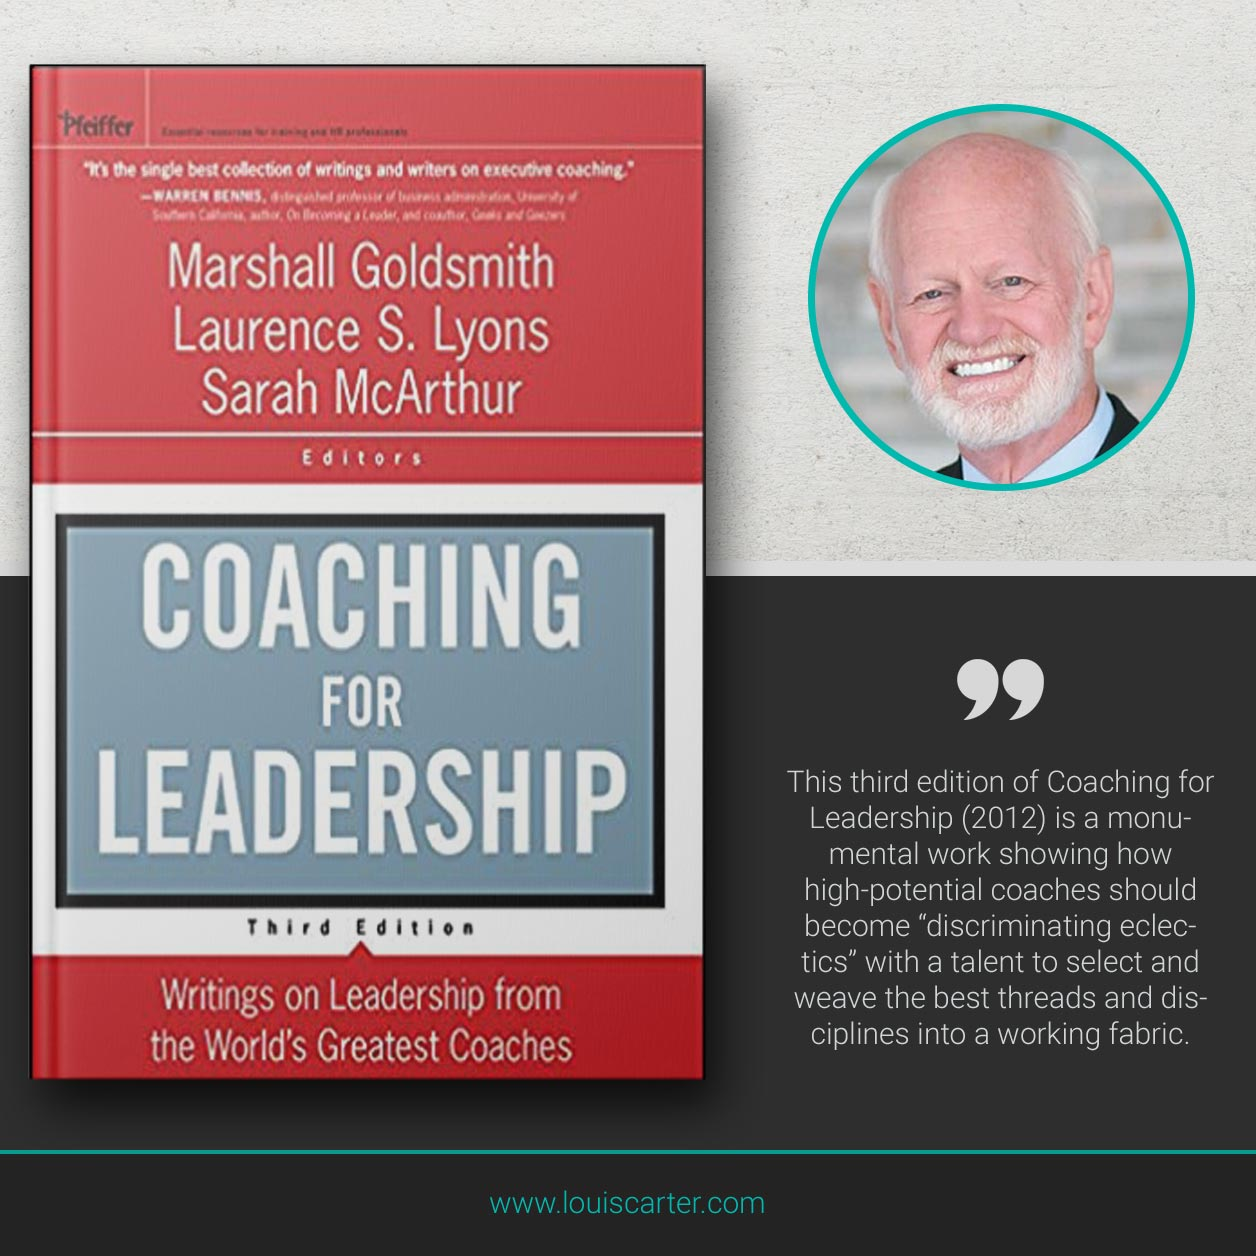 Picture of Coaching for Leadership book by Michael Goldsmith, Laurence S Lyons and Sarah McArthur.